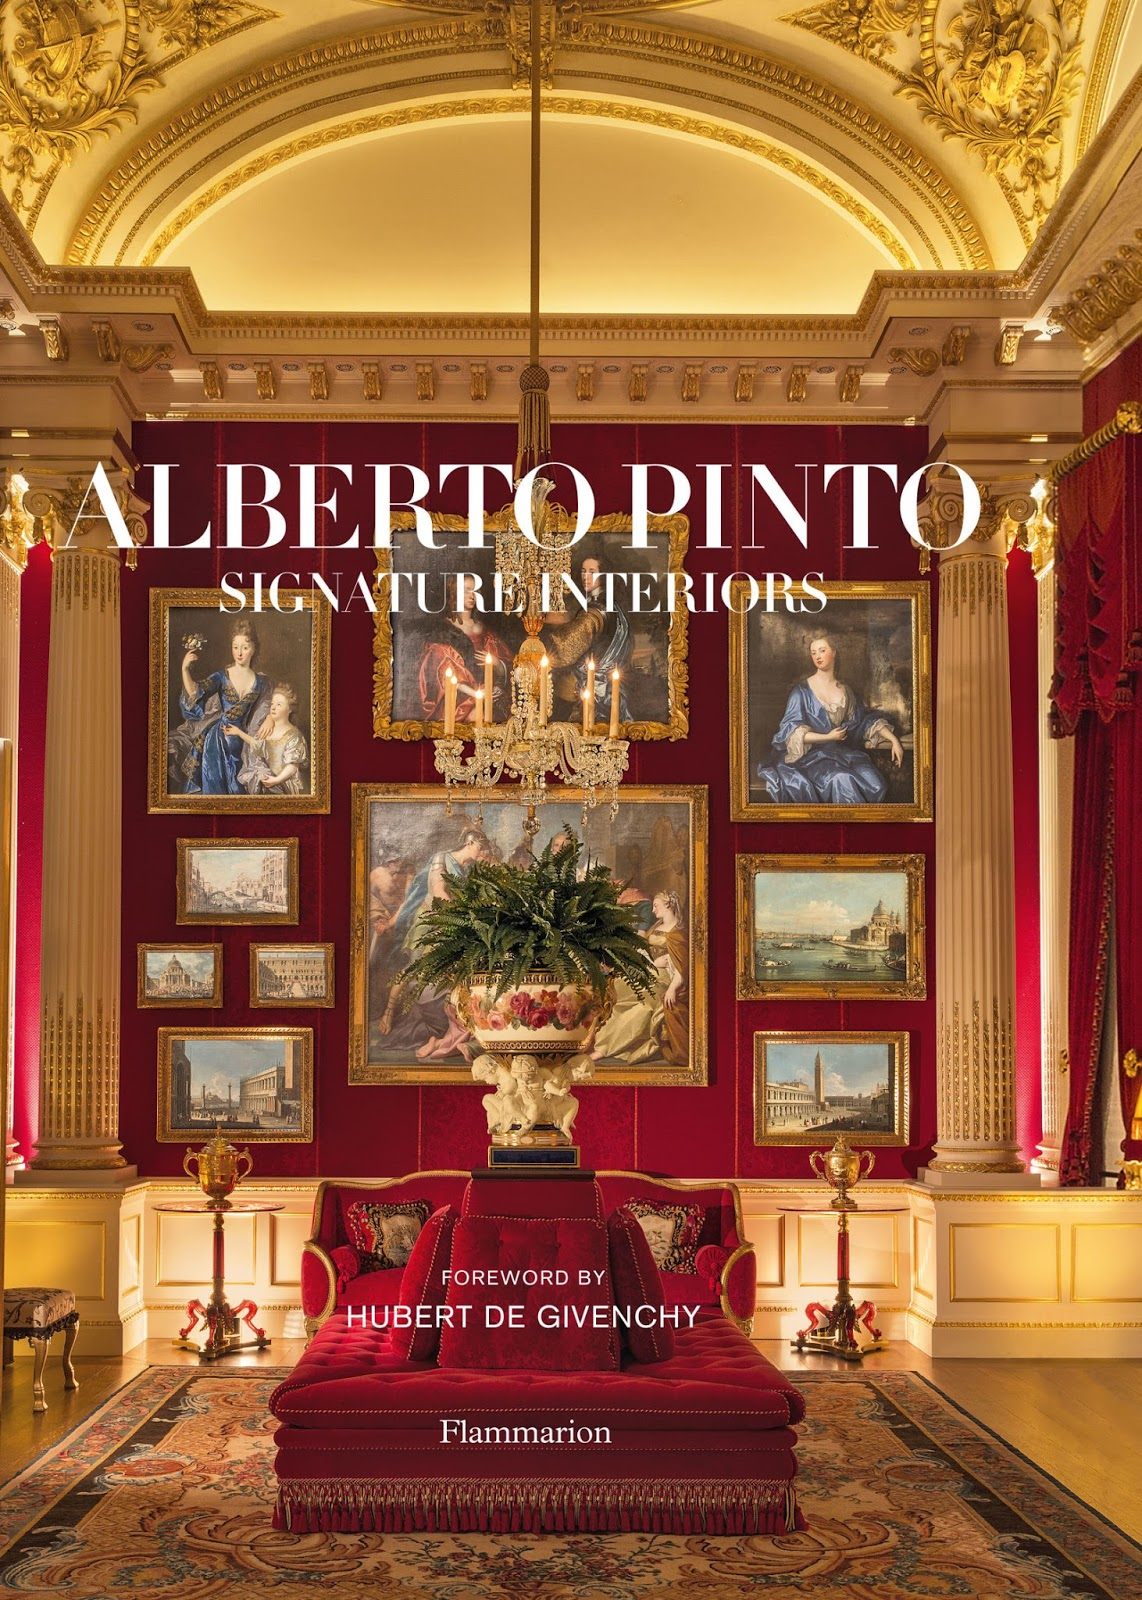 Alberto pinto projects to do at home.